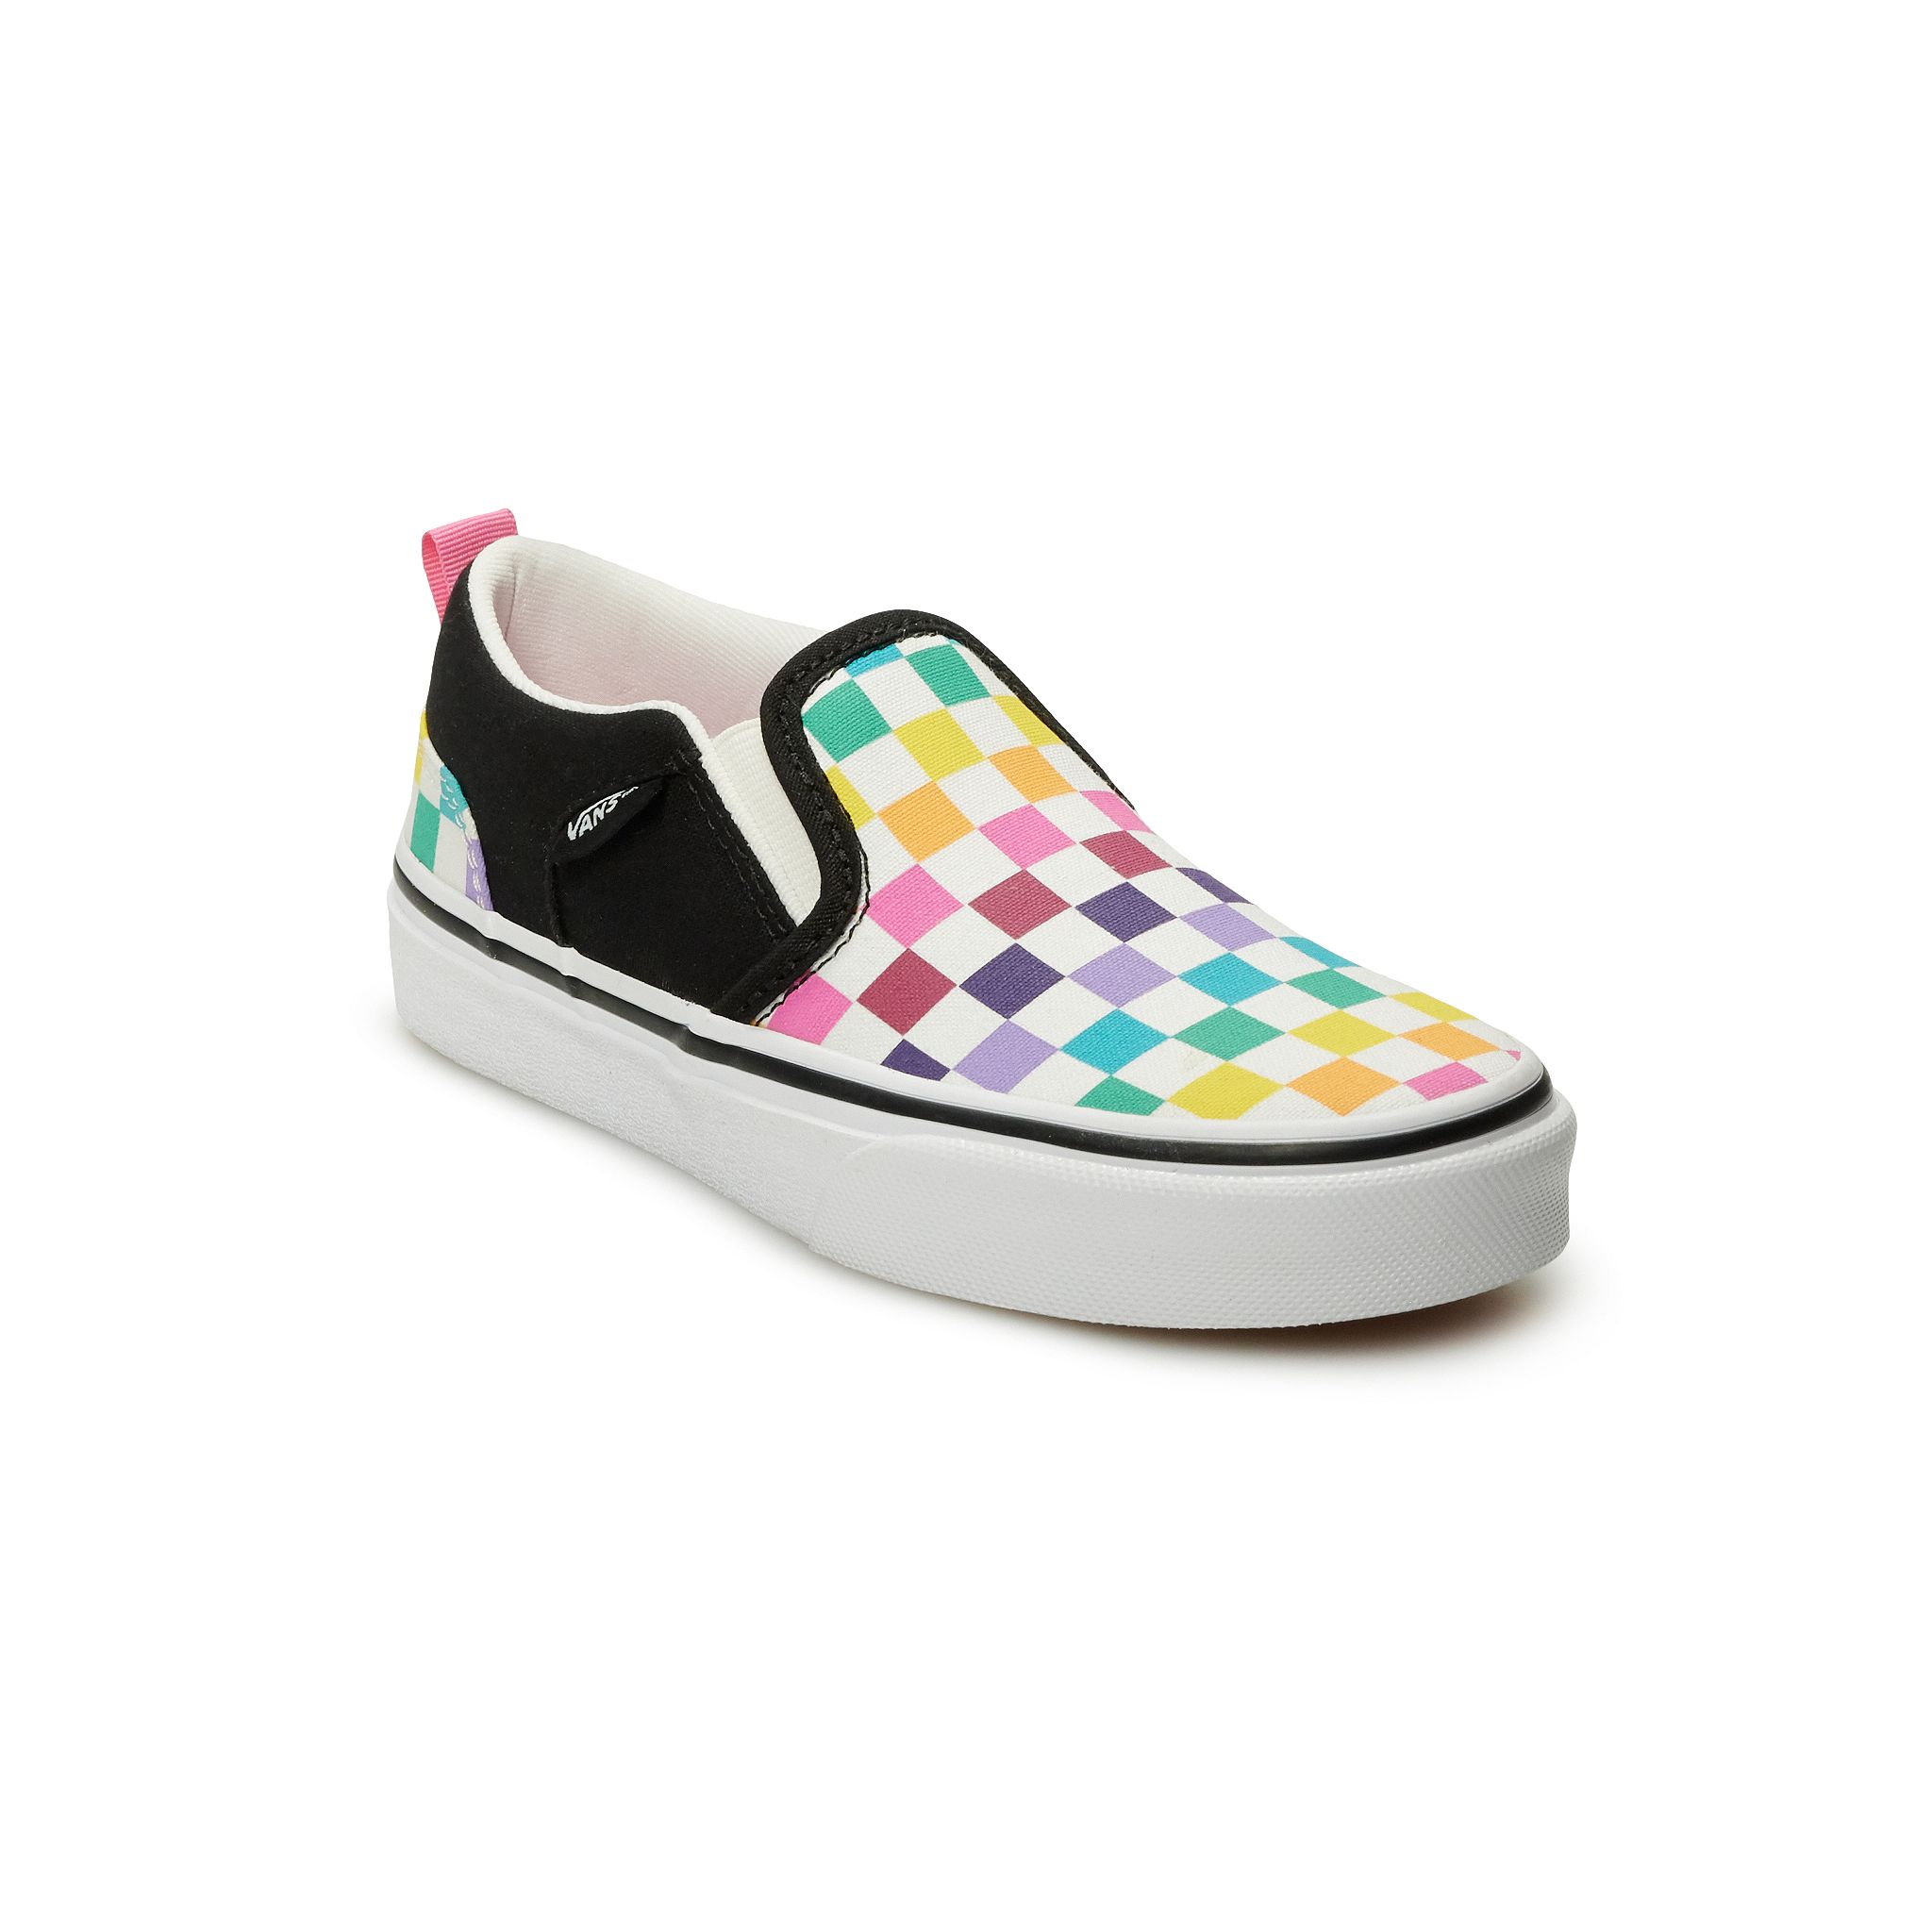 Vans Asher Kids Skate Shoes (various colors/sizes)